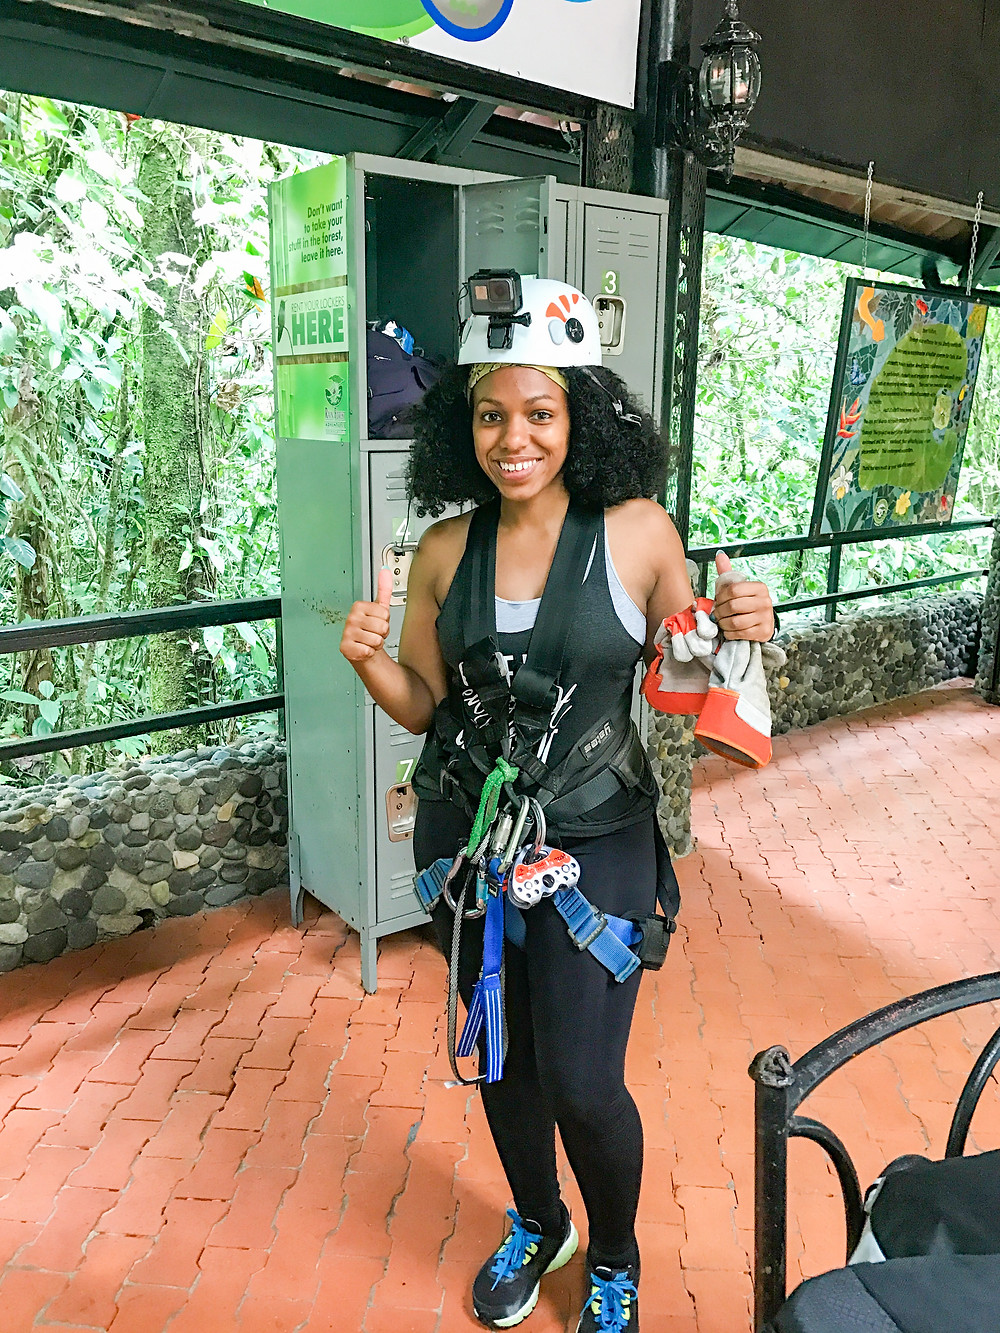 Photo of me celebrating after completing the zip line track in the Costa Rican Rainforest